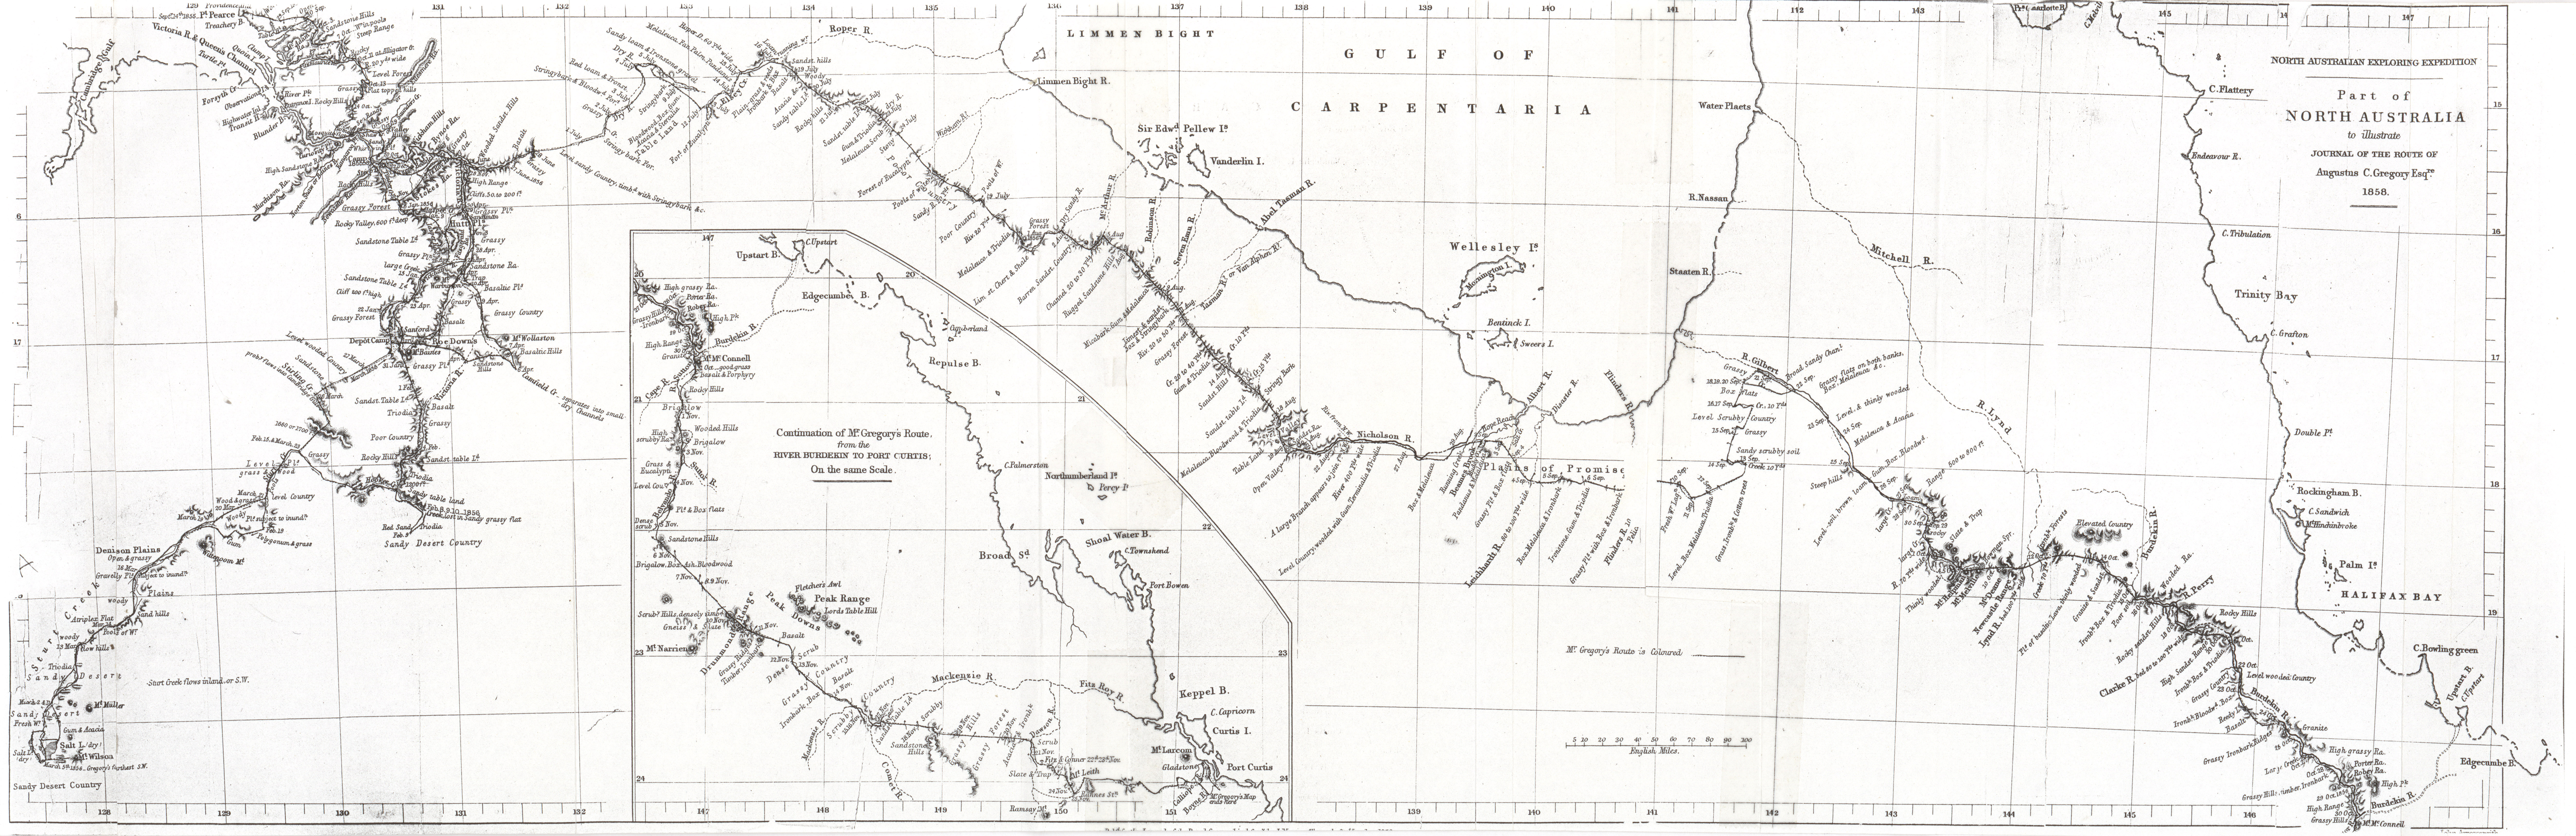 Maps From The Journal Of The Royal Geographical Society Of London - Map of us drawn by australian